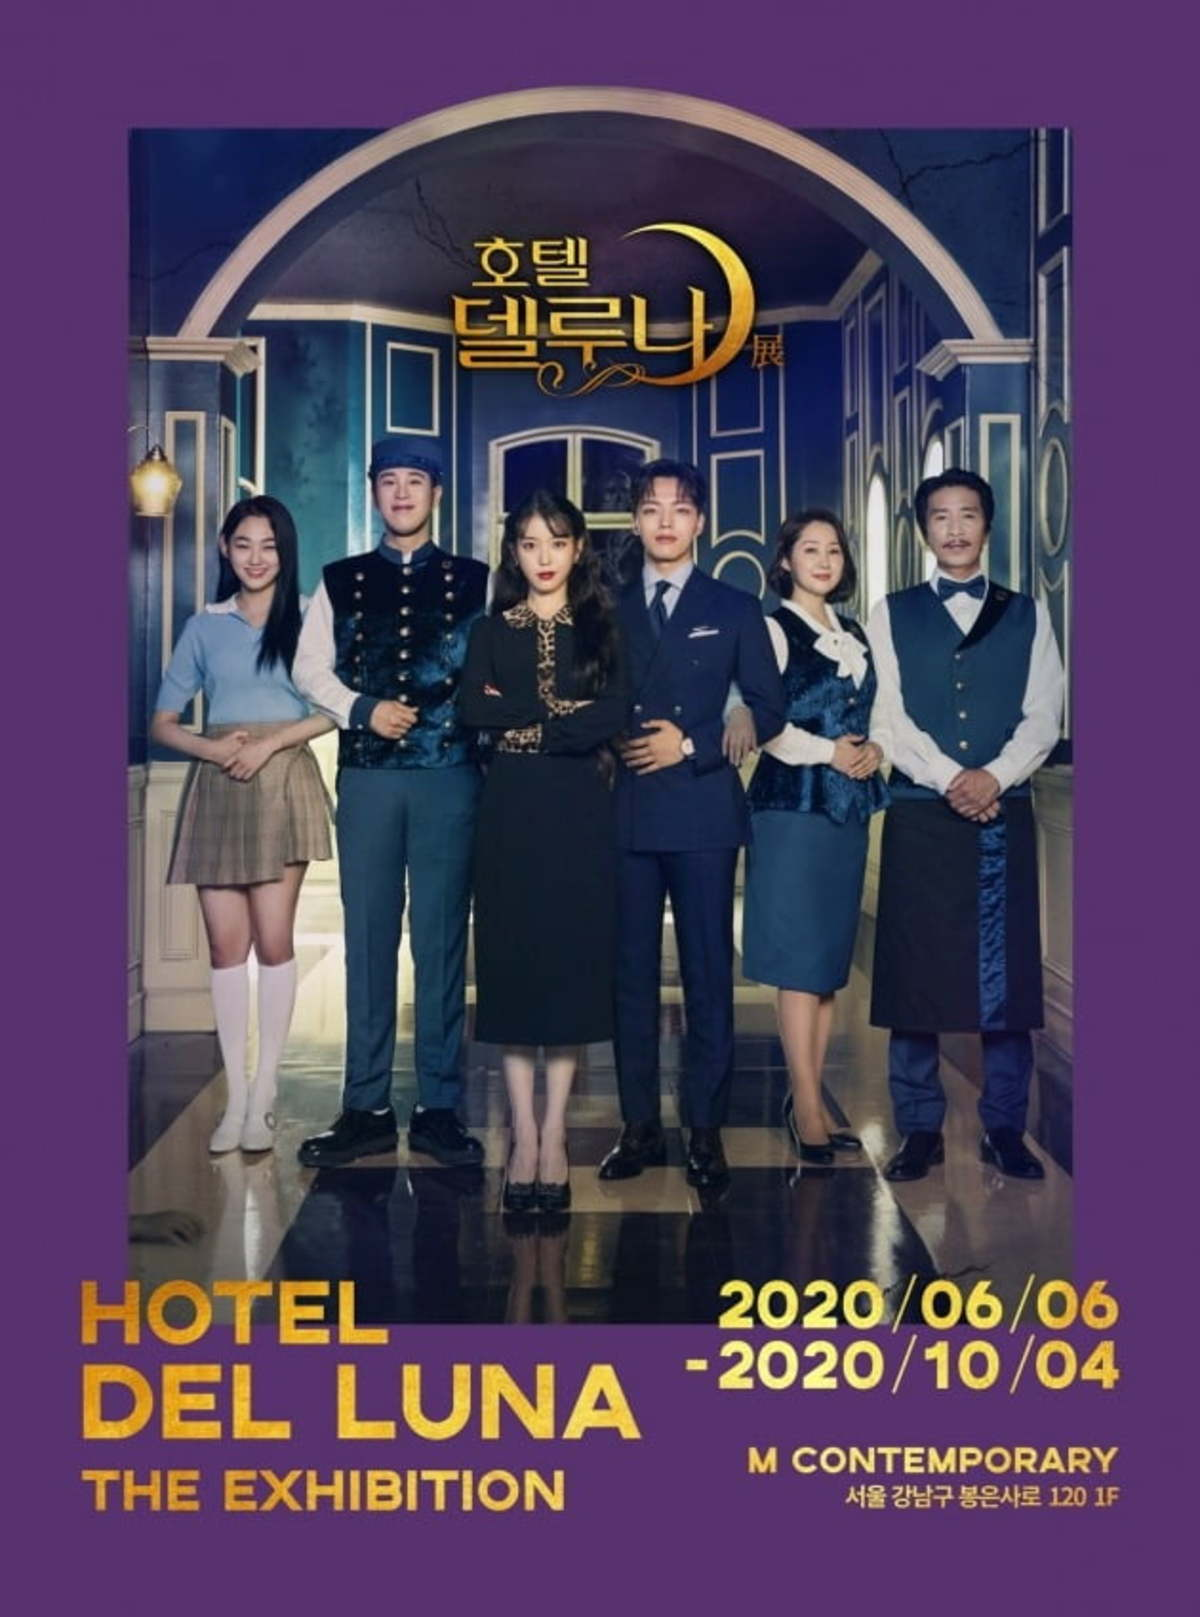 hoteldelluna exhibit